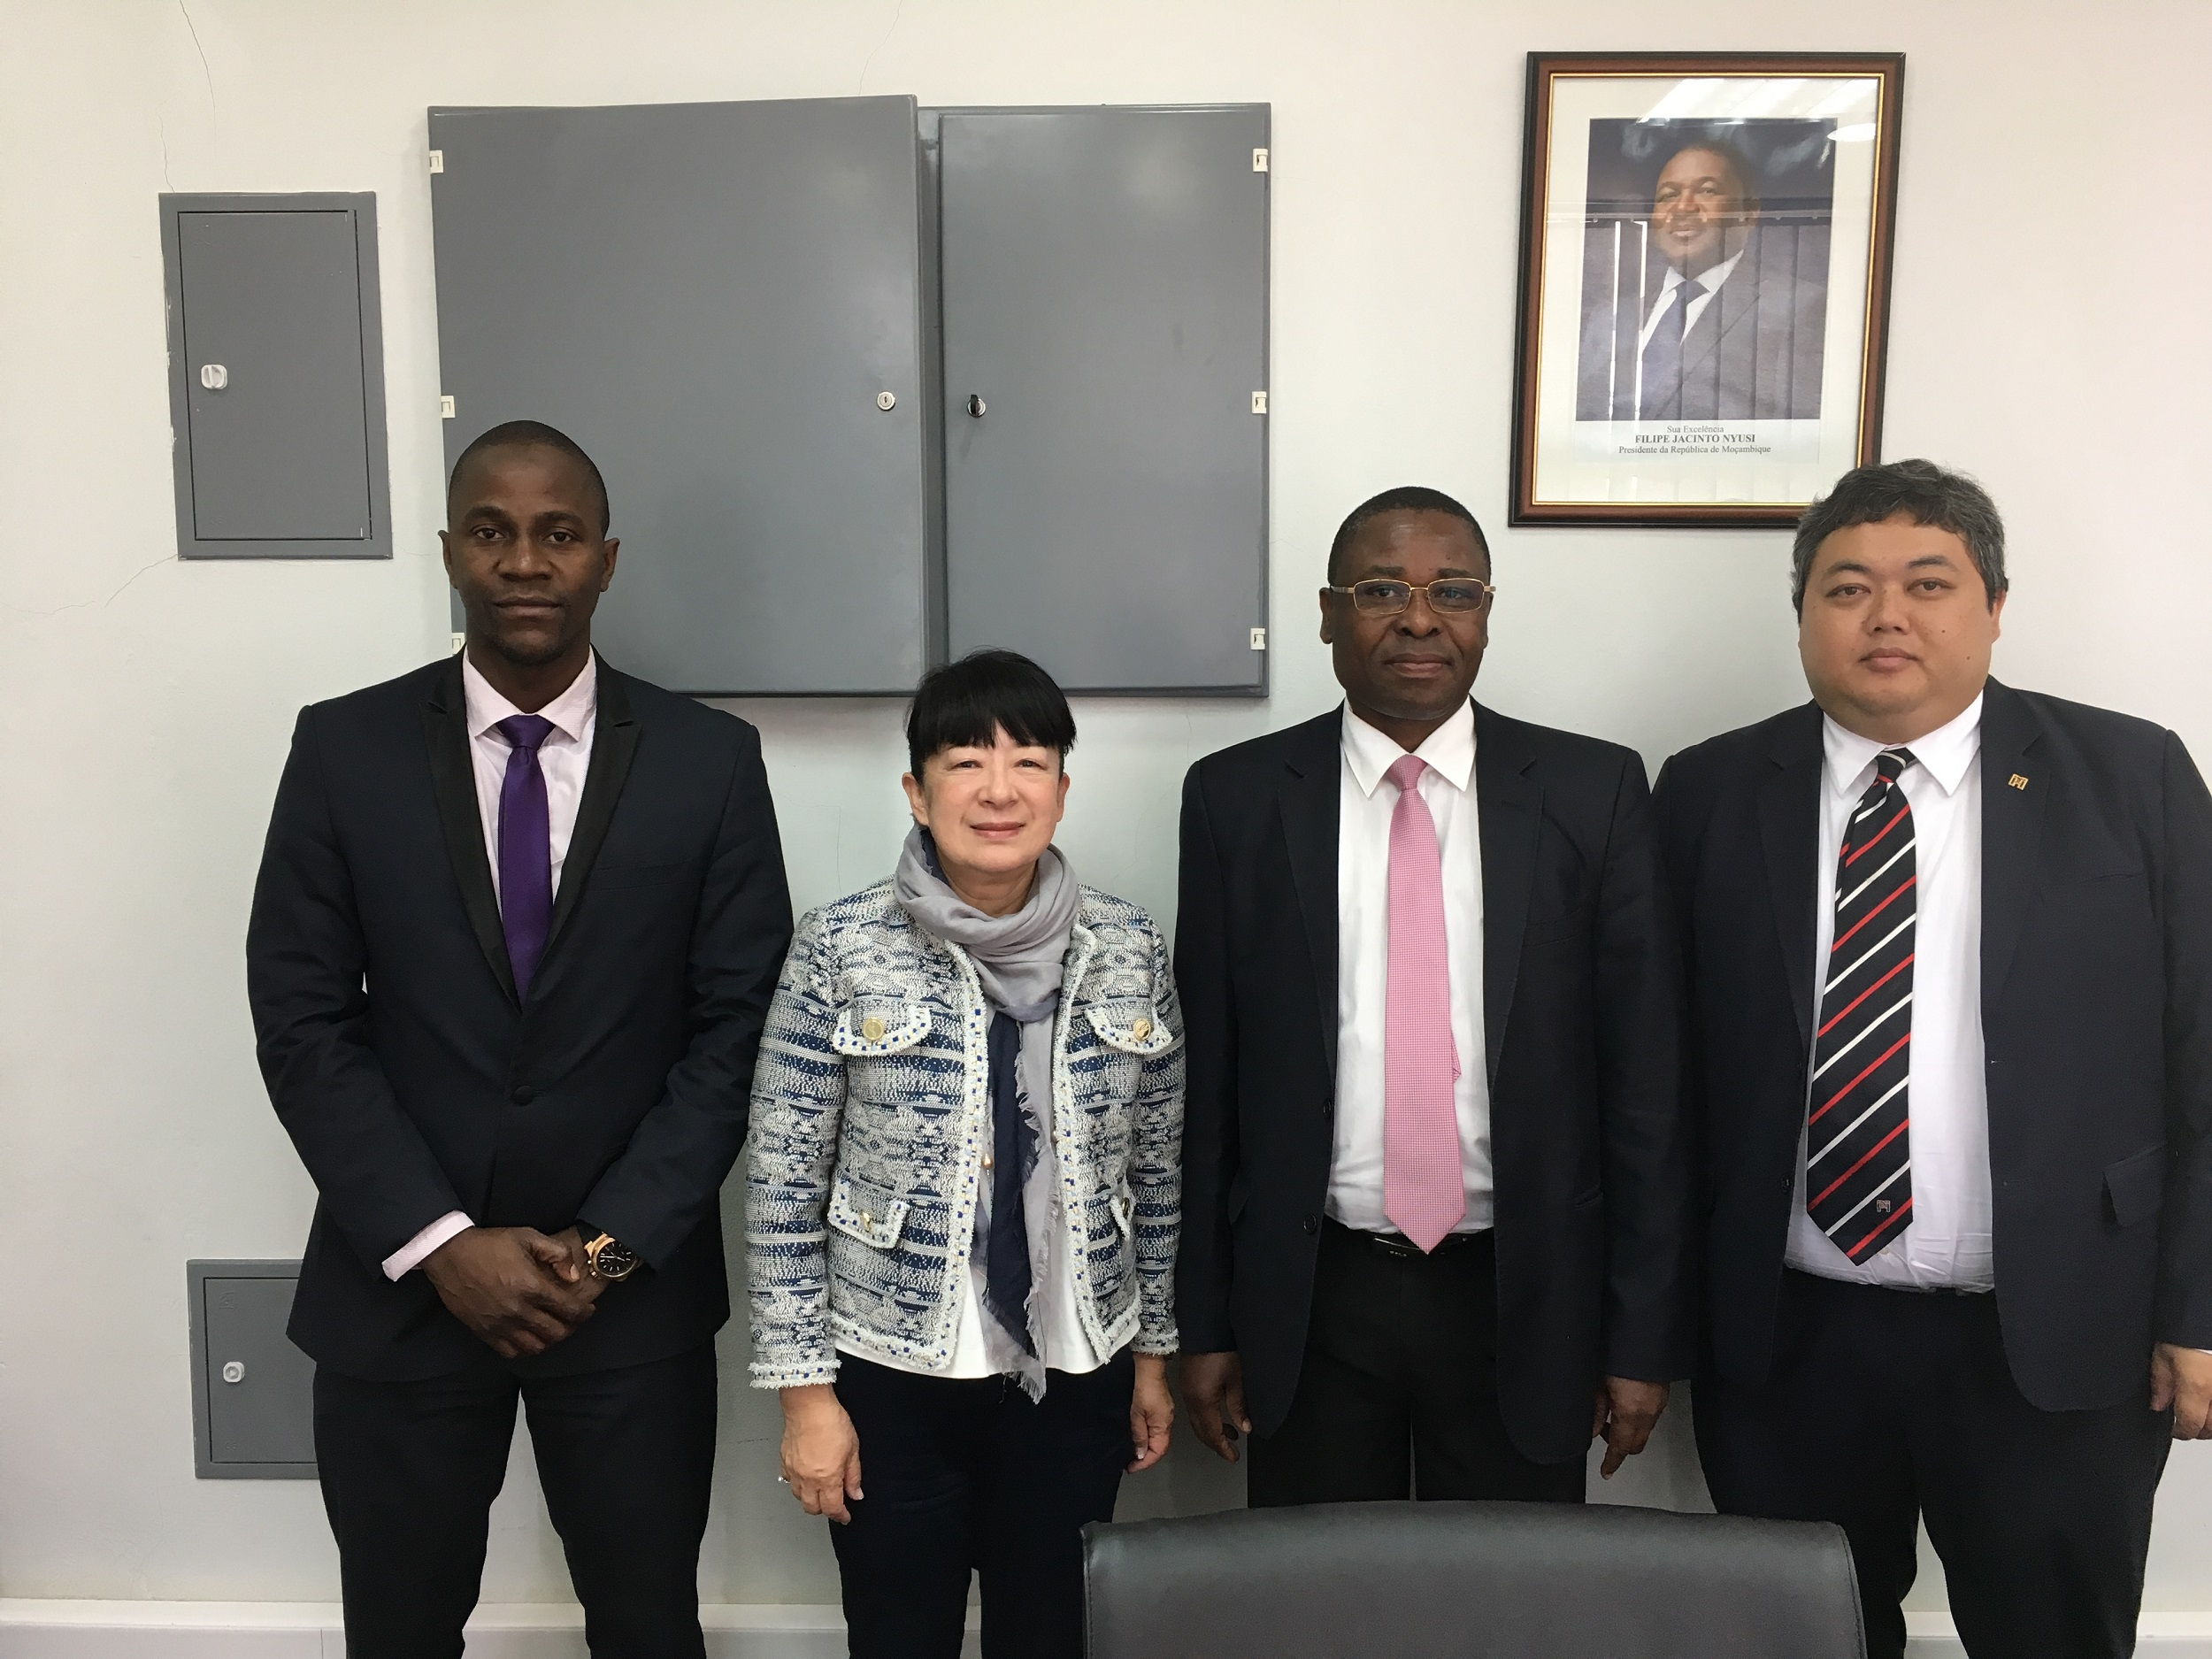 Group photo of the Executive Director of IPIM, Mrs. Irene V. K. Lau with the Director-General of Mozambique Investment and Export Promotion Agency, Lourenço Sambo (second from the right)